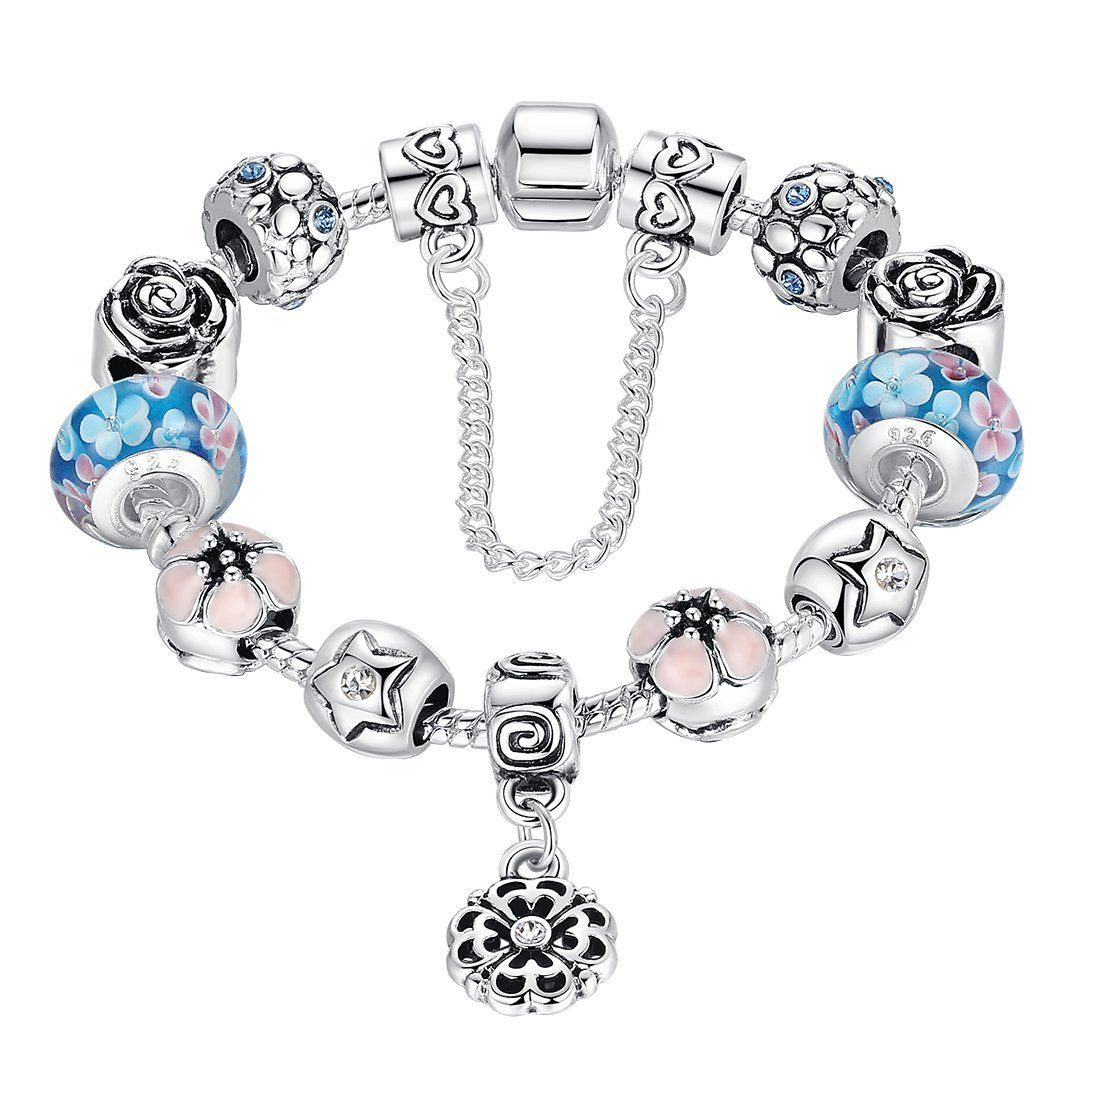 https://www.amazon.co.uk/Wostu-Crystals-Pendants-European-Bracelets/dp/B01MTO952H/ref=pd_sim_197_5?_encoding=UTF8: